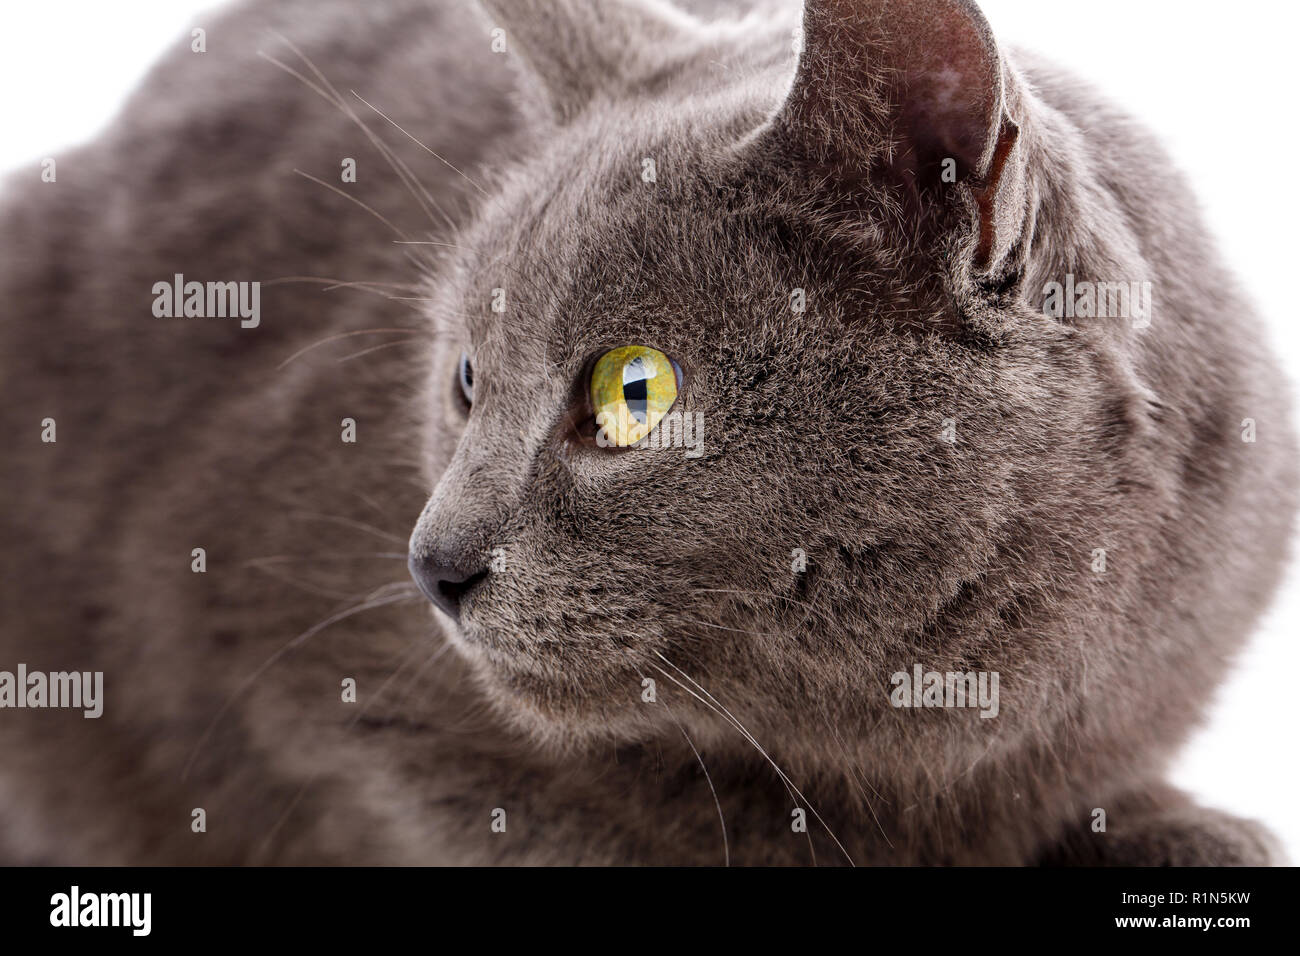 Cat Portrait without breed. A simple gray cat - Stock Image